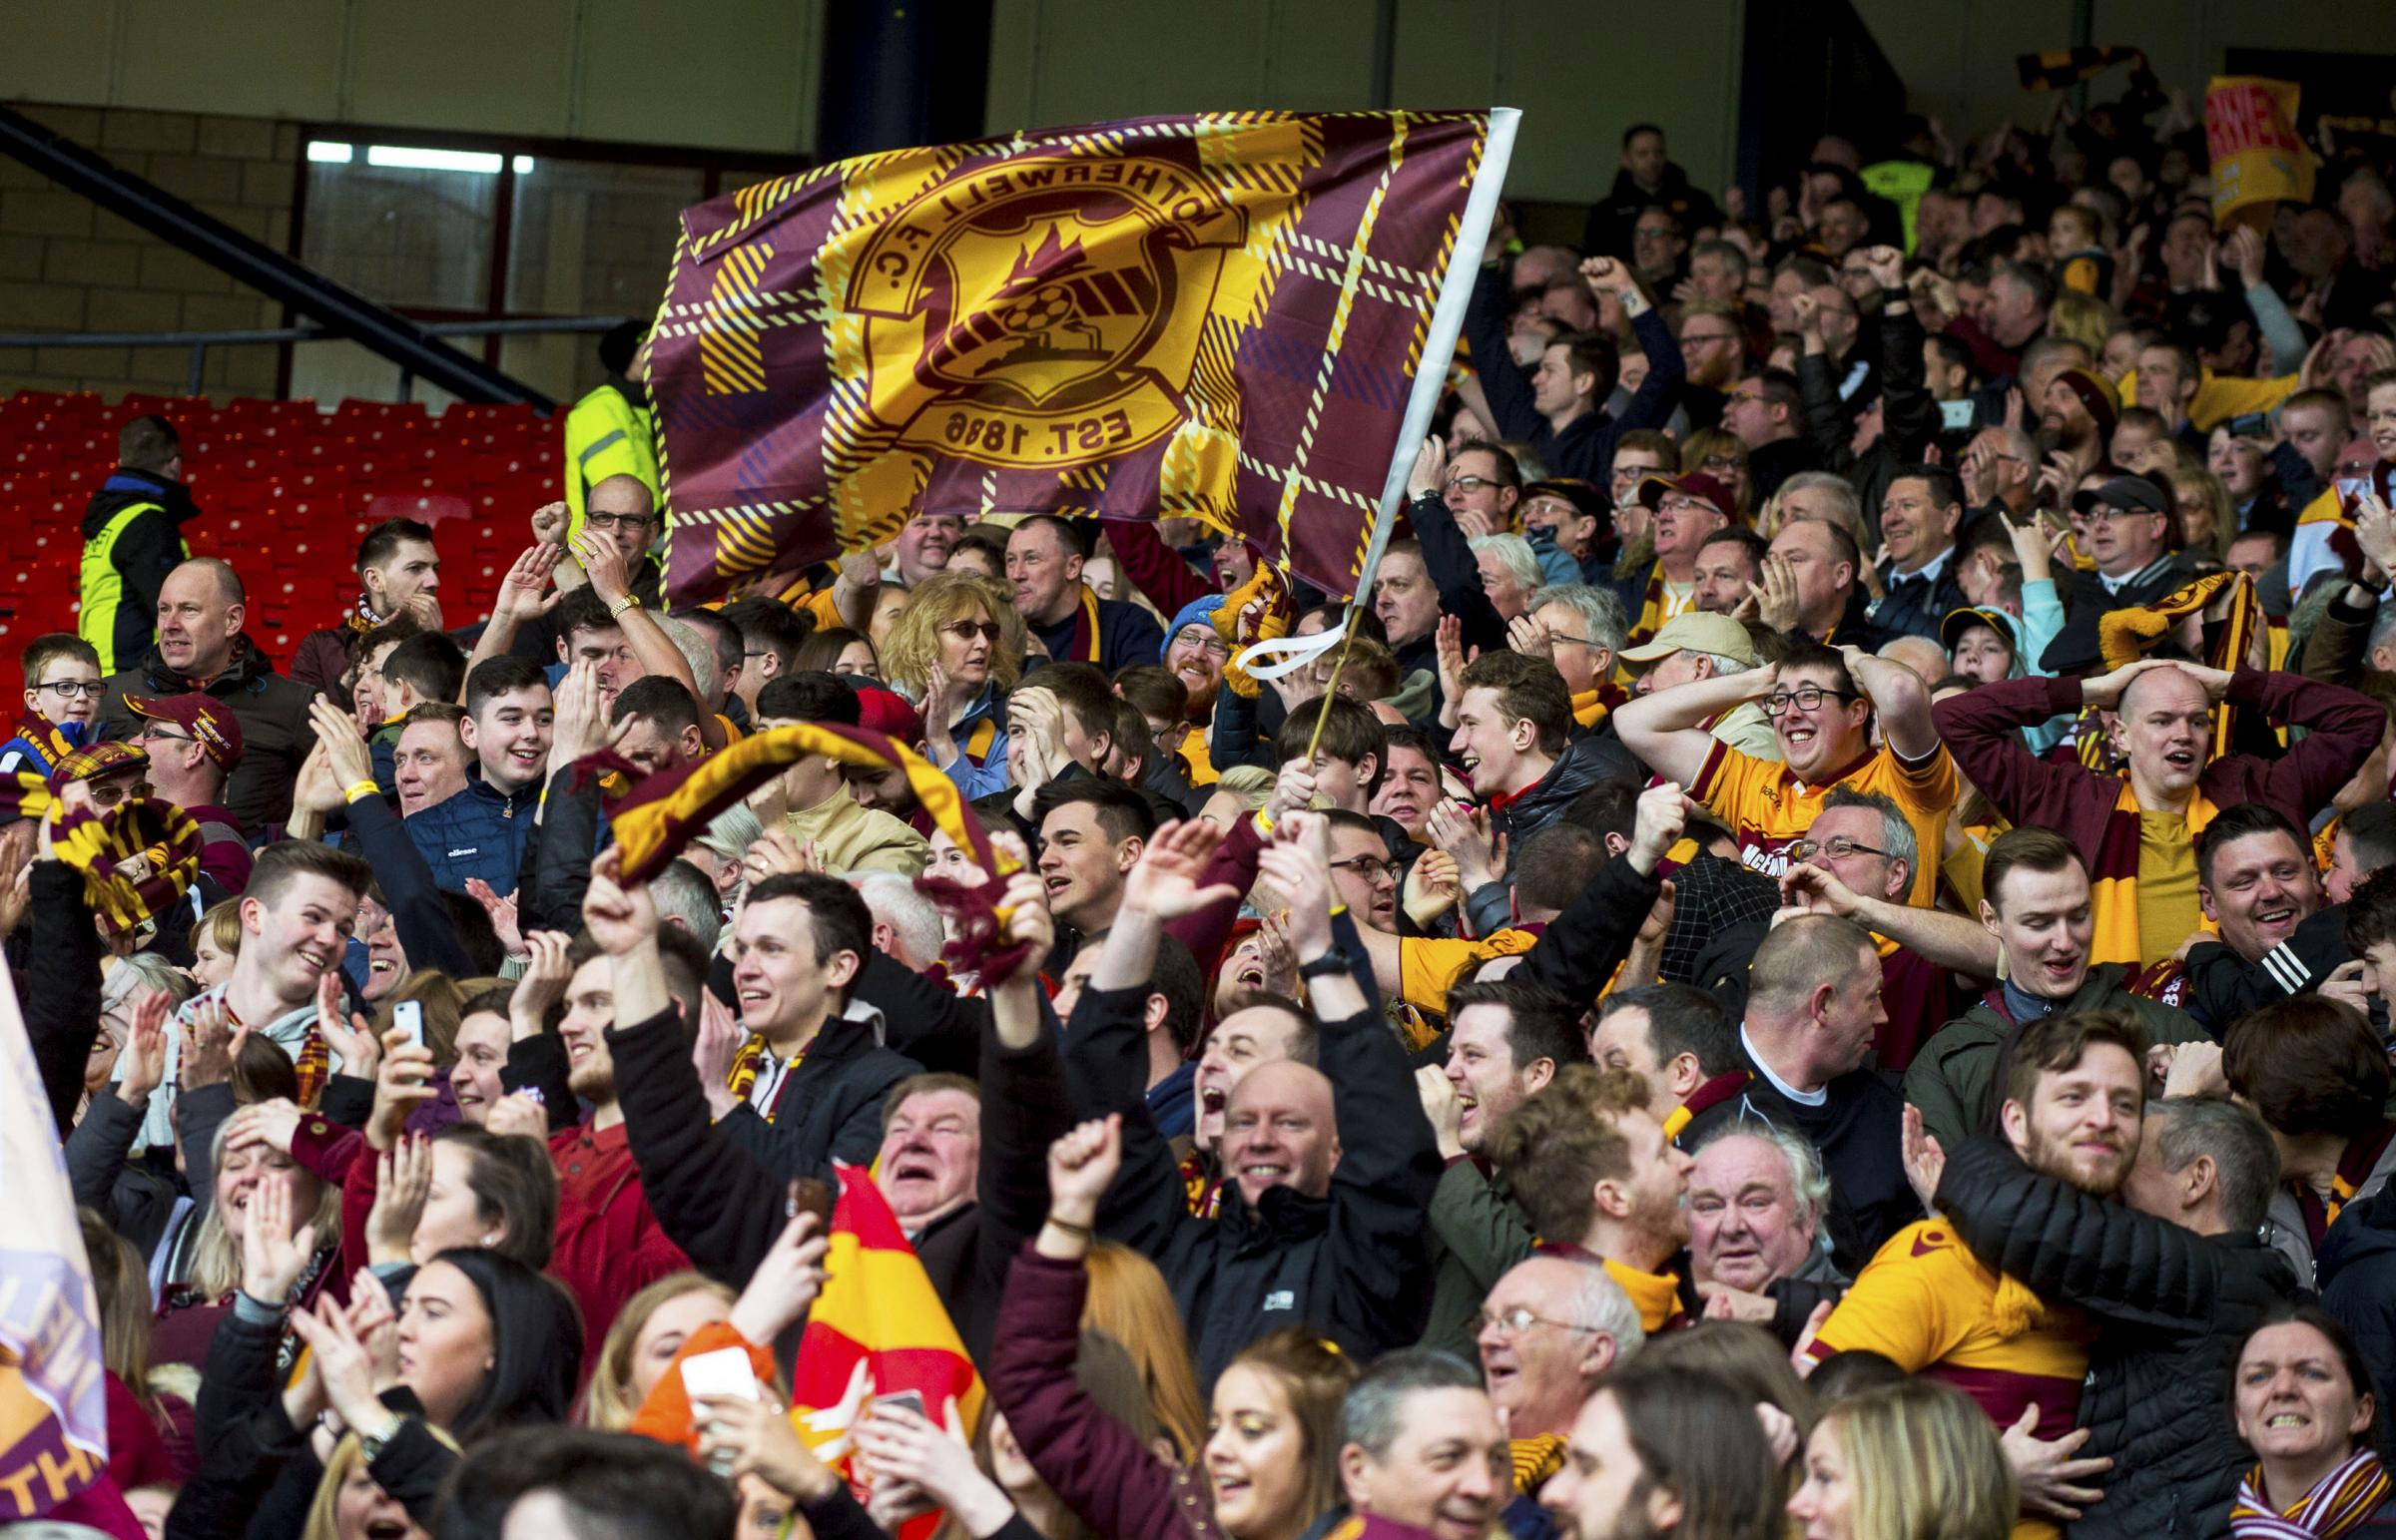 Motherwell fans in the stands.